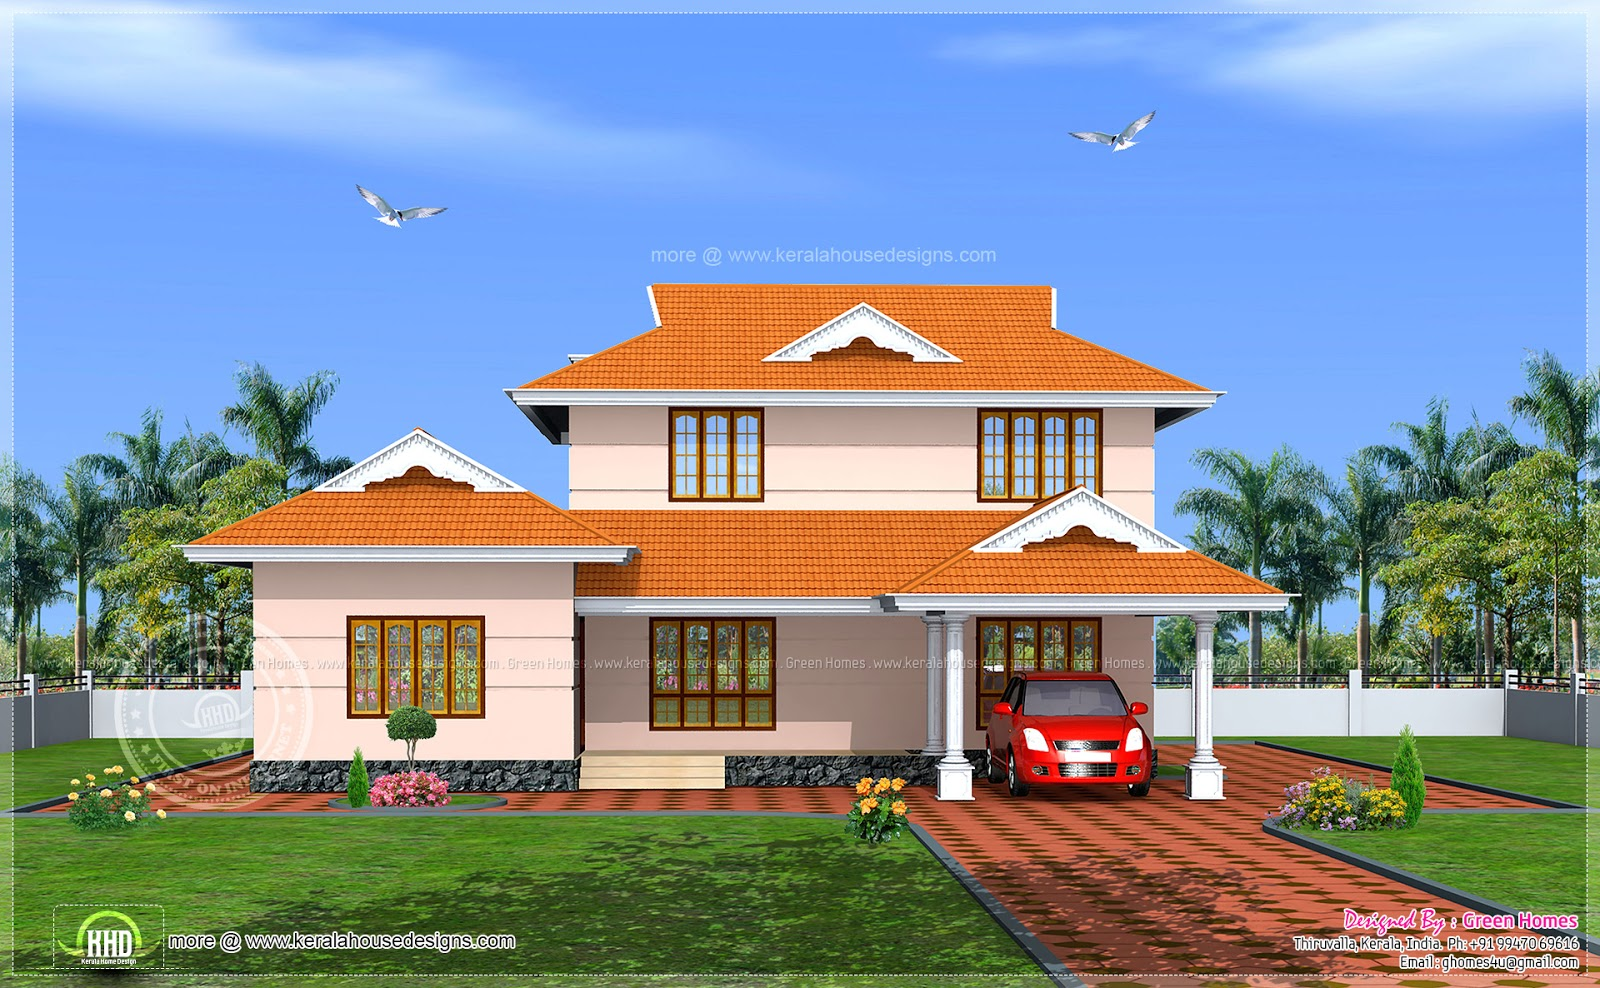 228 square meter kerala model house exterior kerala home for Kerala house images gallery